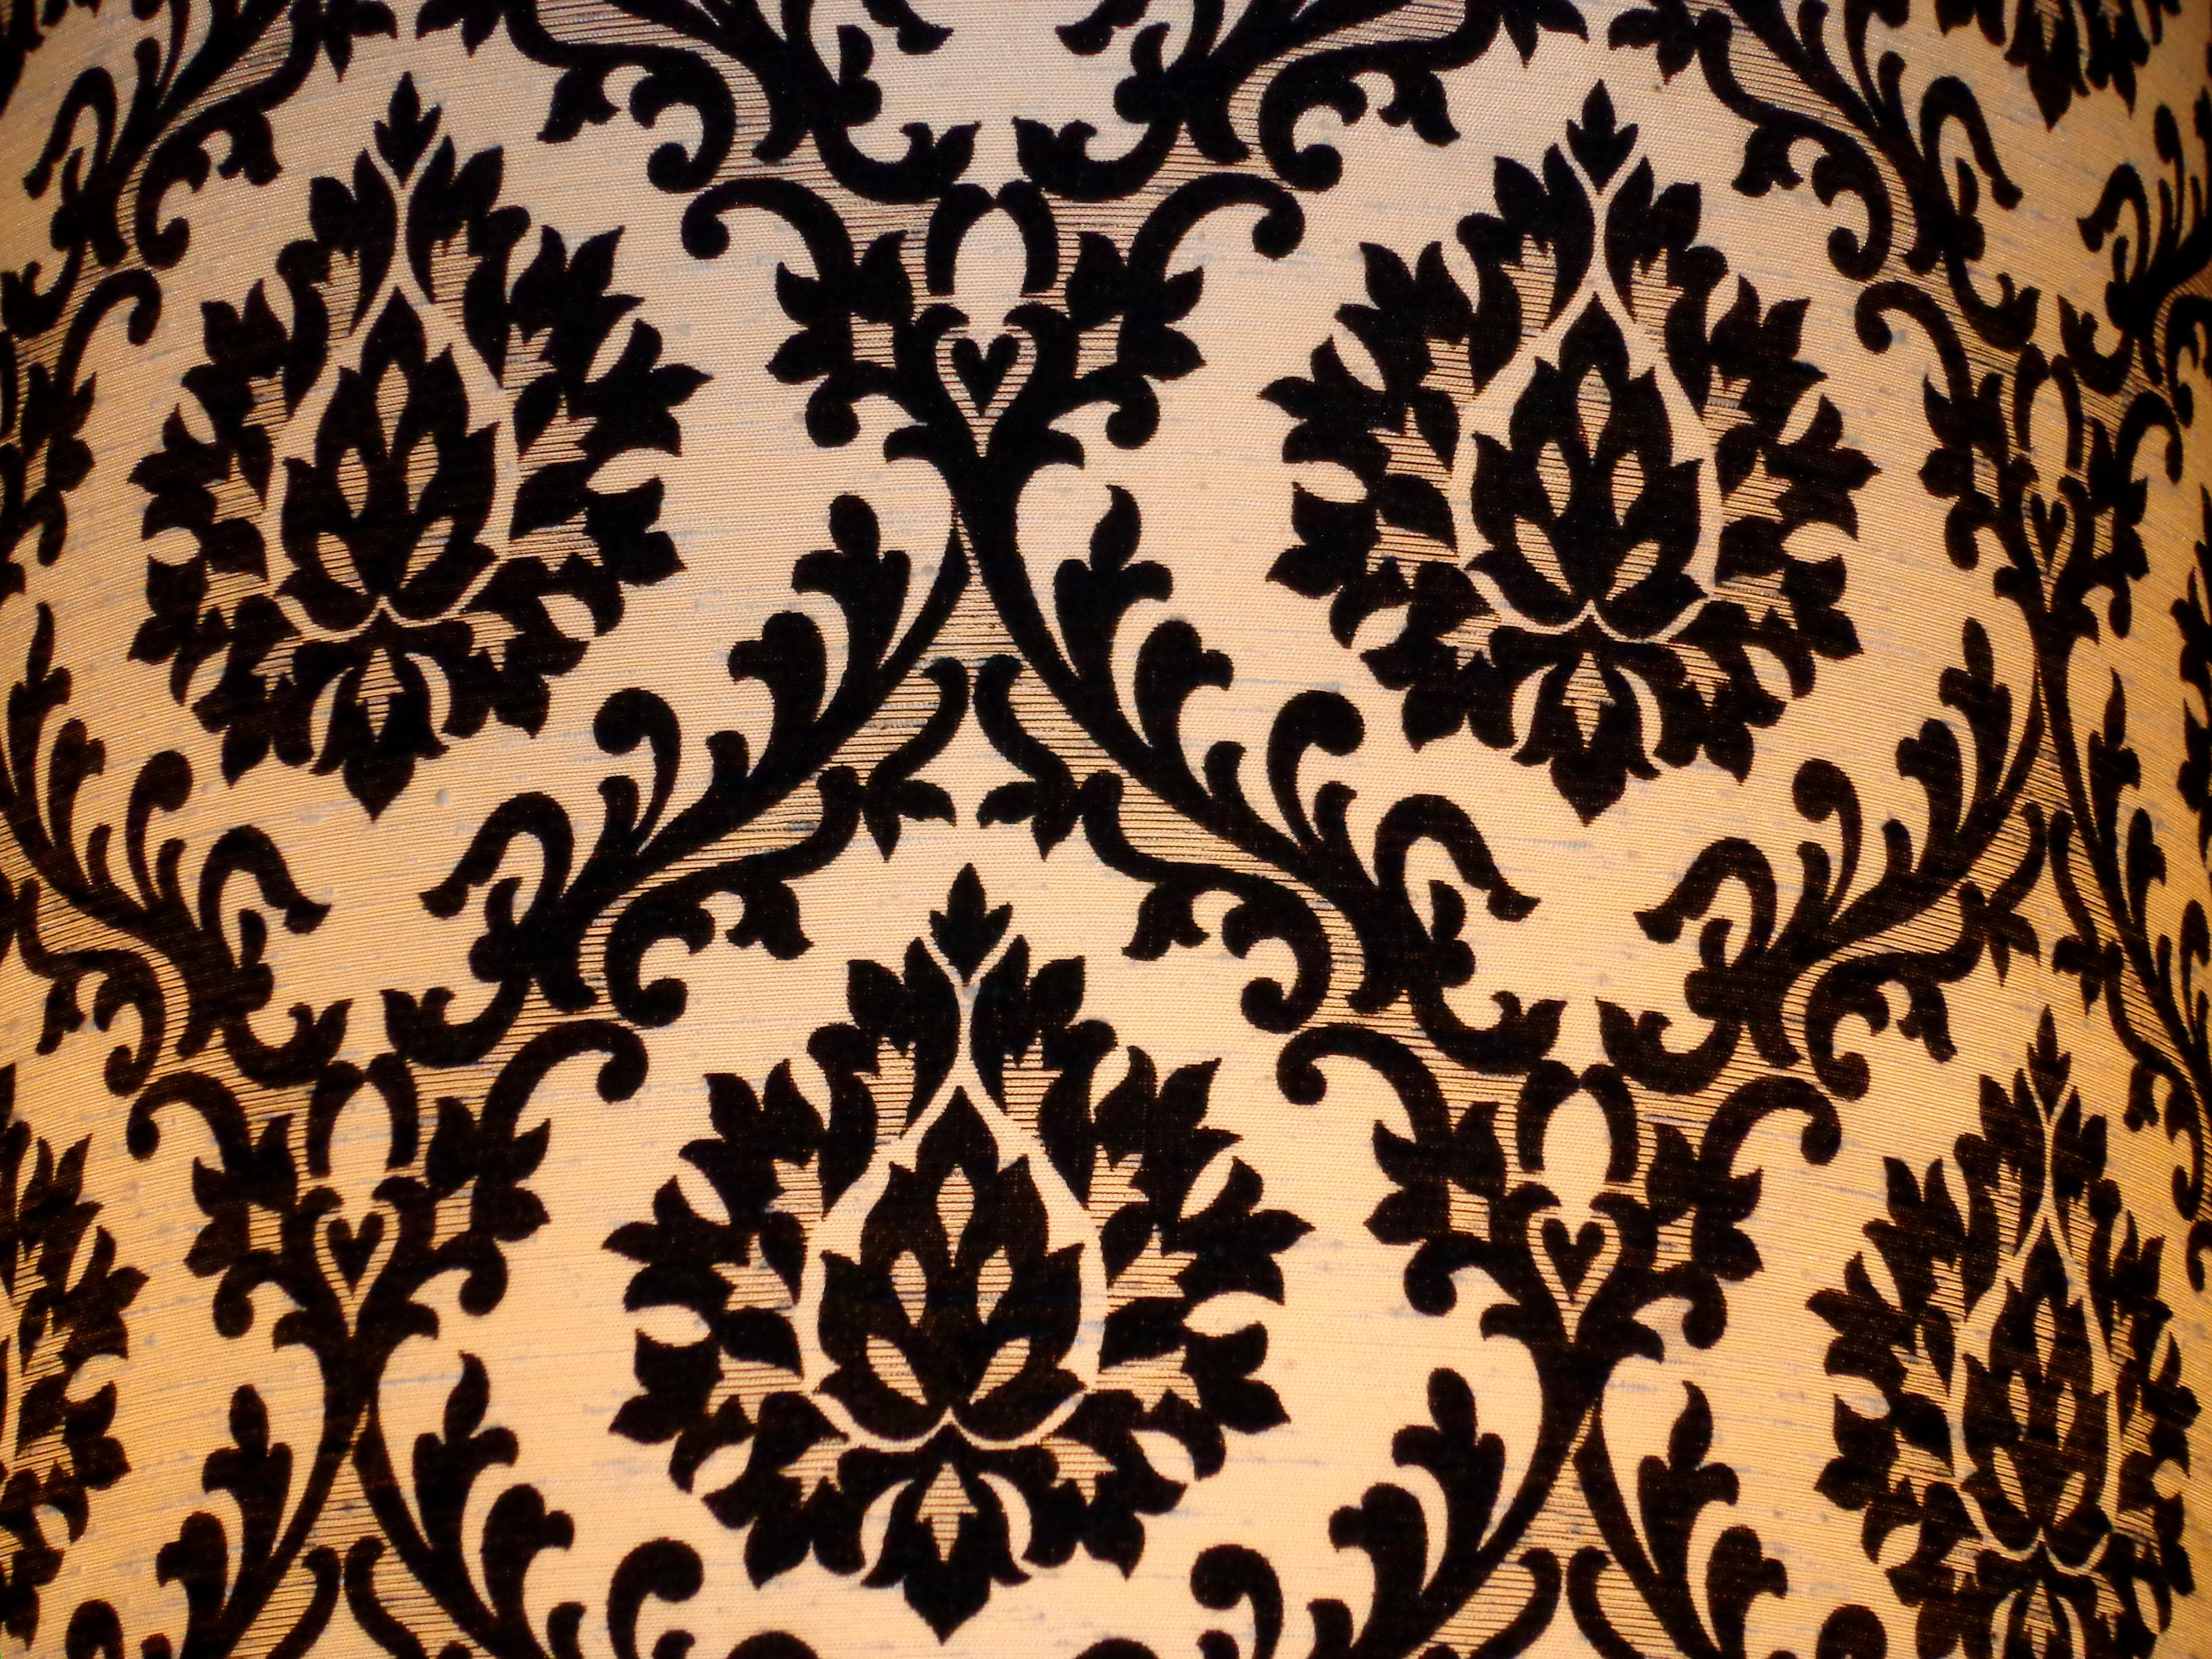 Damask lampshade texture picture free photograph photos public damask lampshade texture aloadofball Image collections